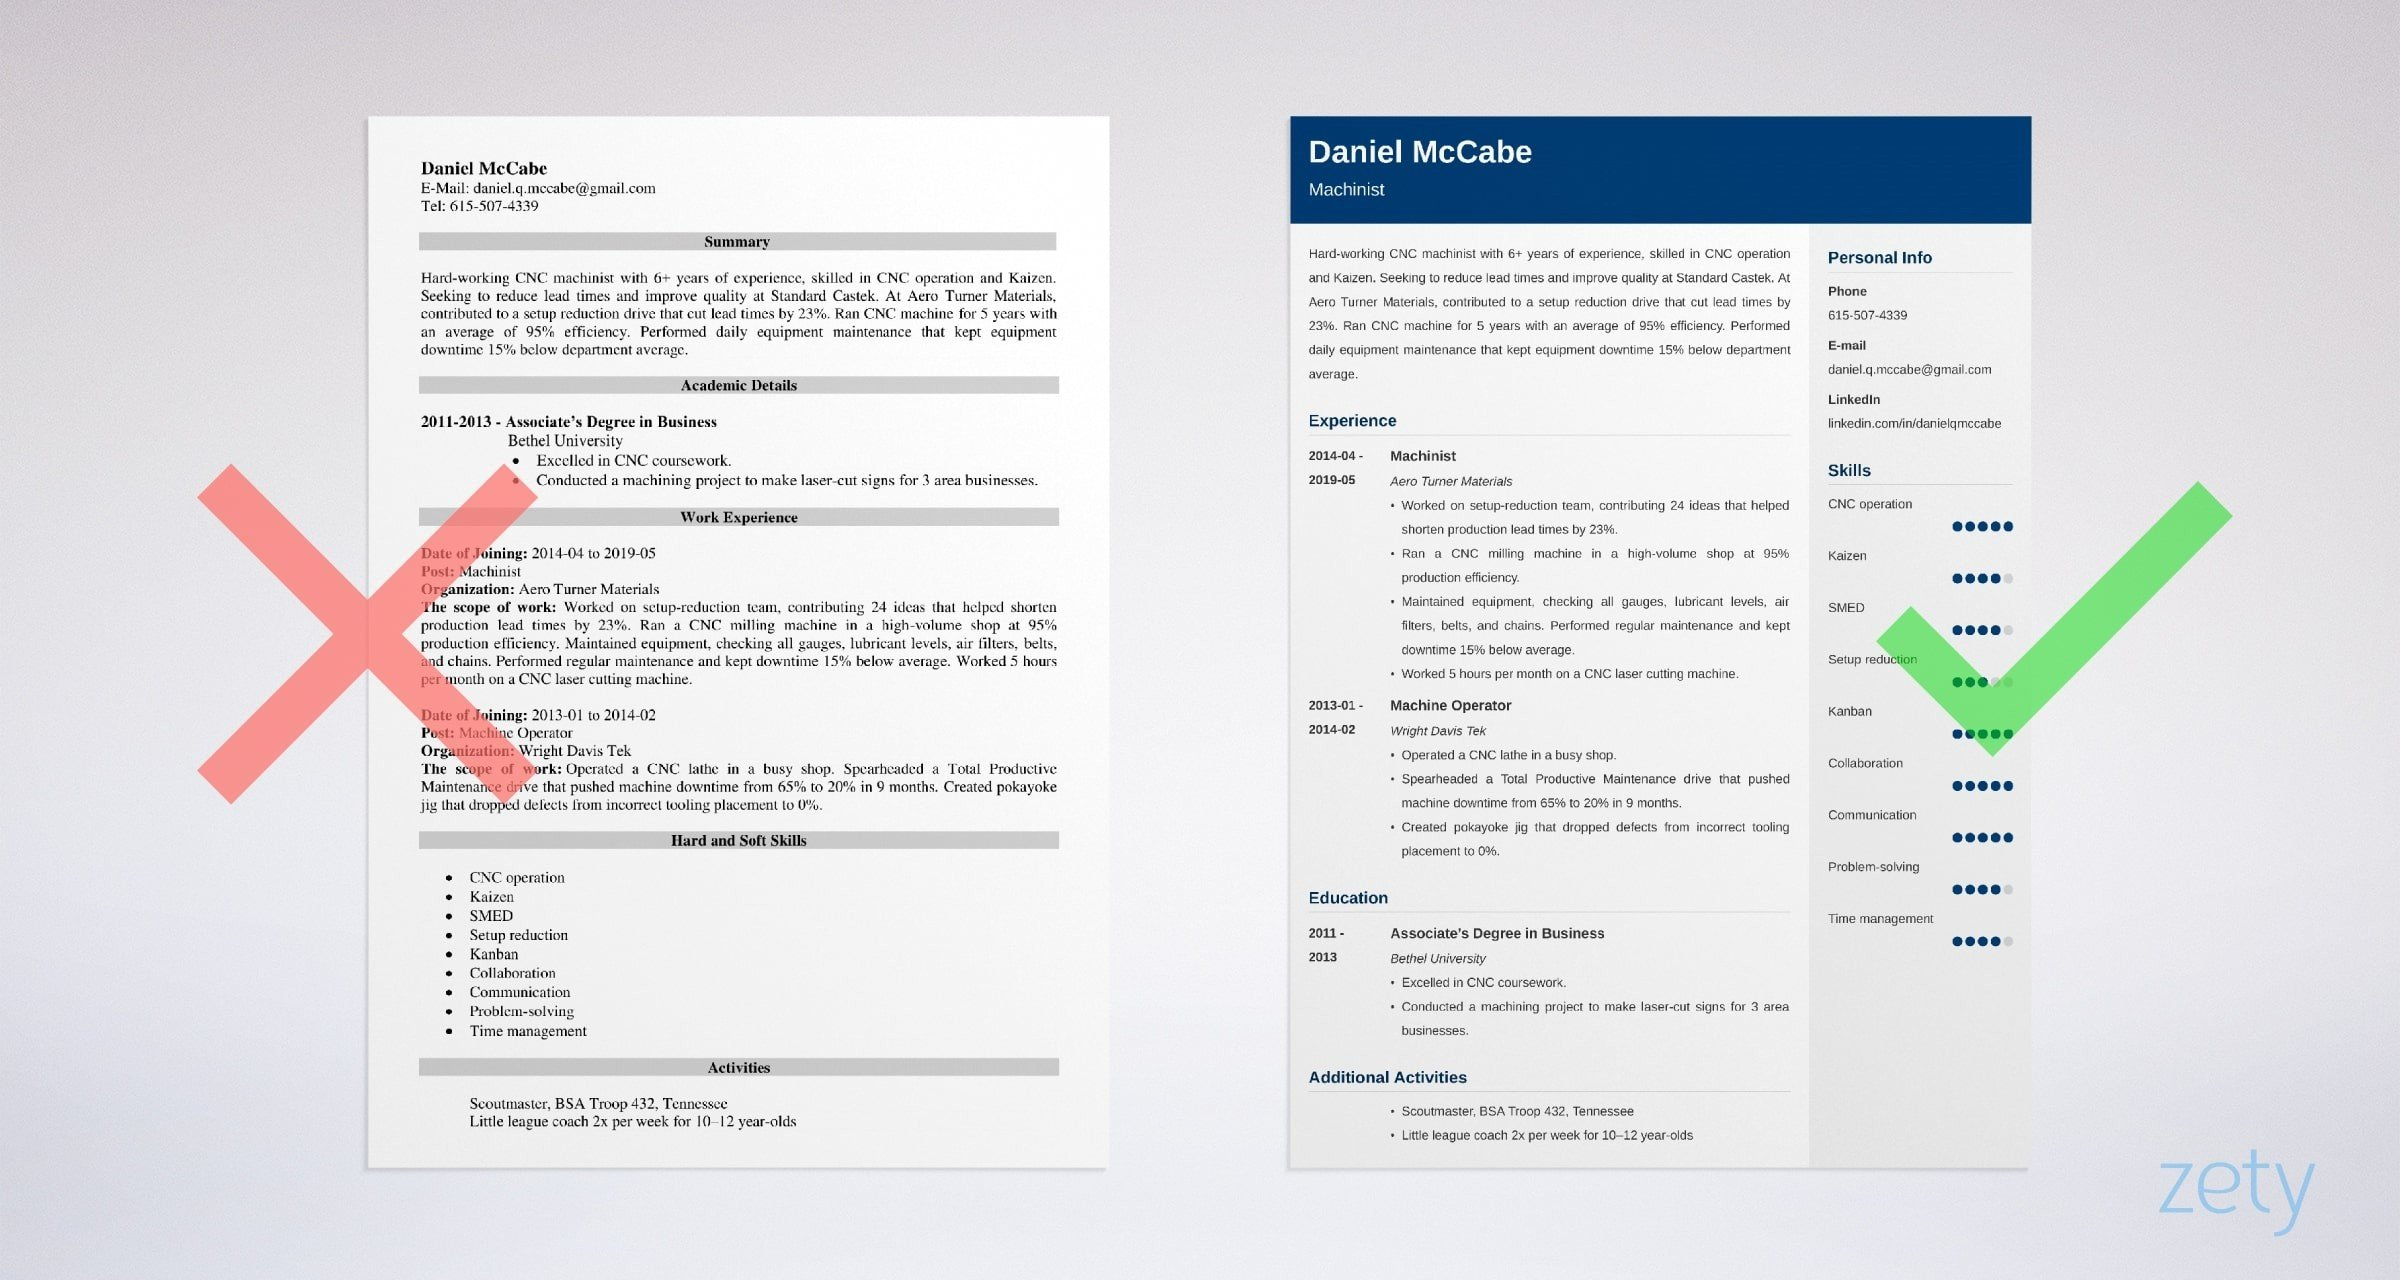 cnc machinist resume samples for machine operators tips indeed example shsu template Resume Cnc Machinist Resume Indeed